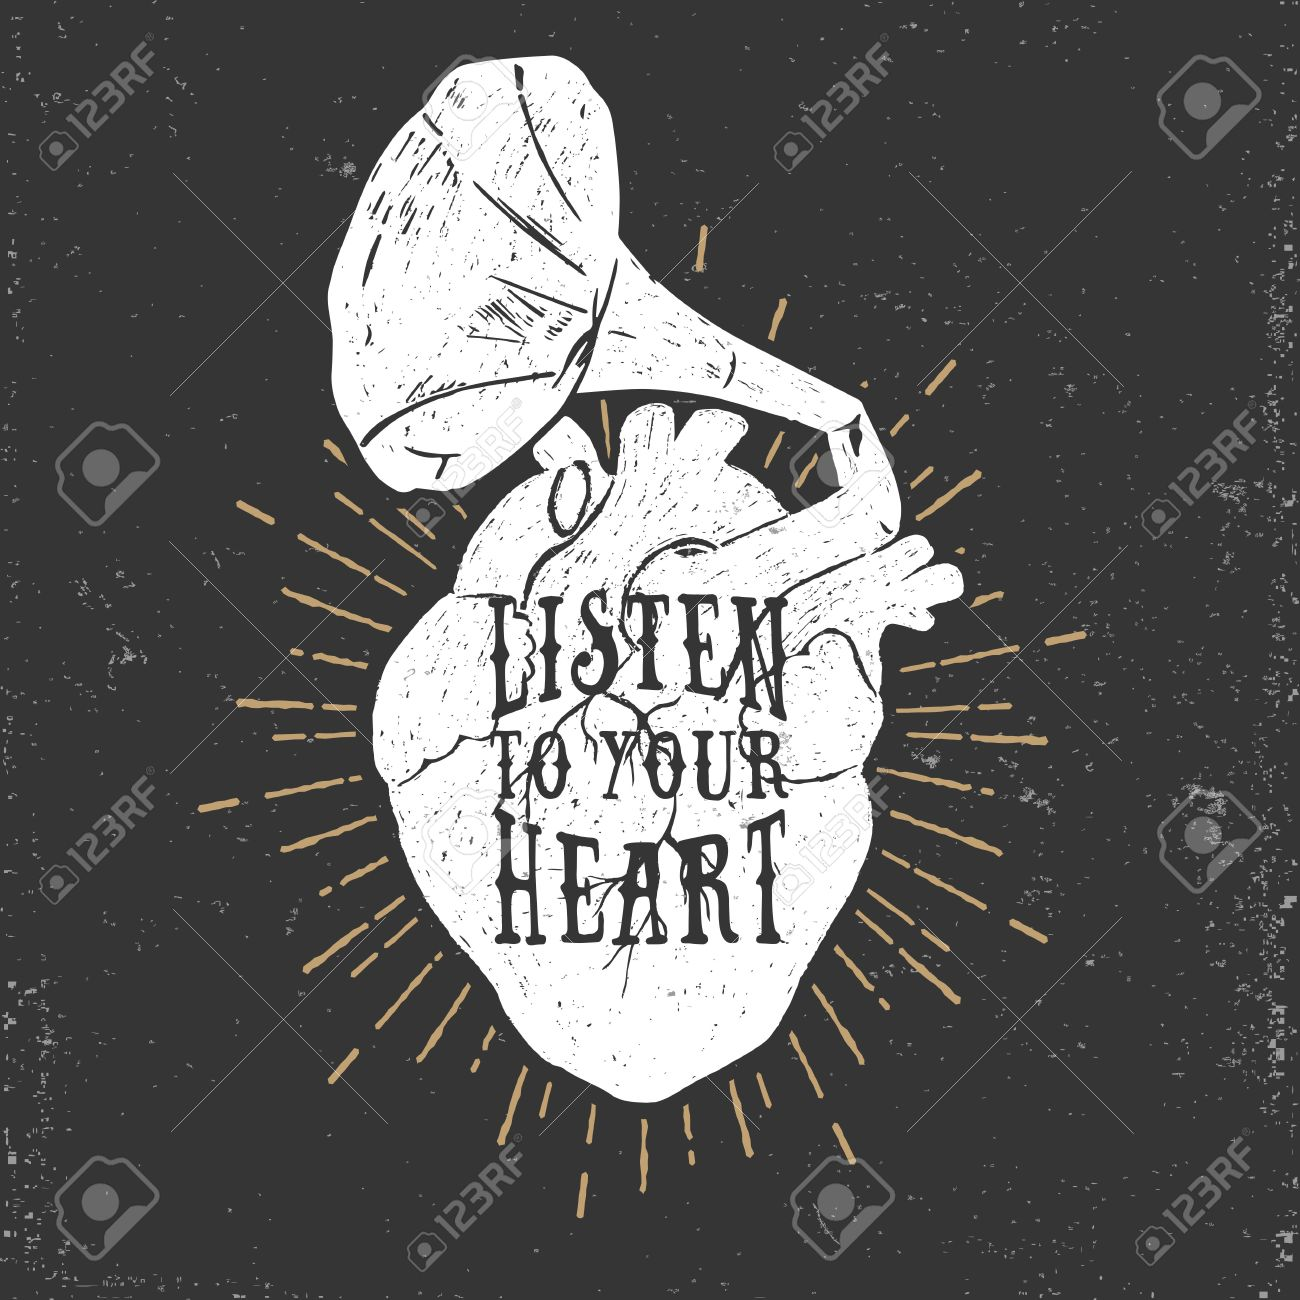 Hand drawn textured romantic poster with human heart and gramophone horn, and inspiring lettering vector illustration on the black background. - 53285221